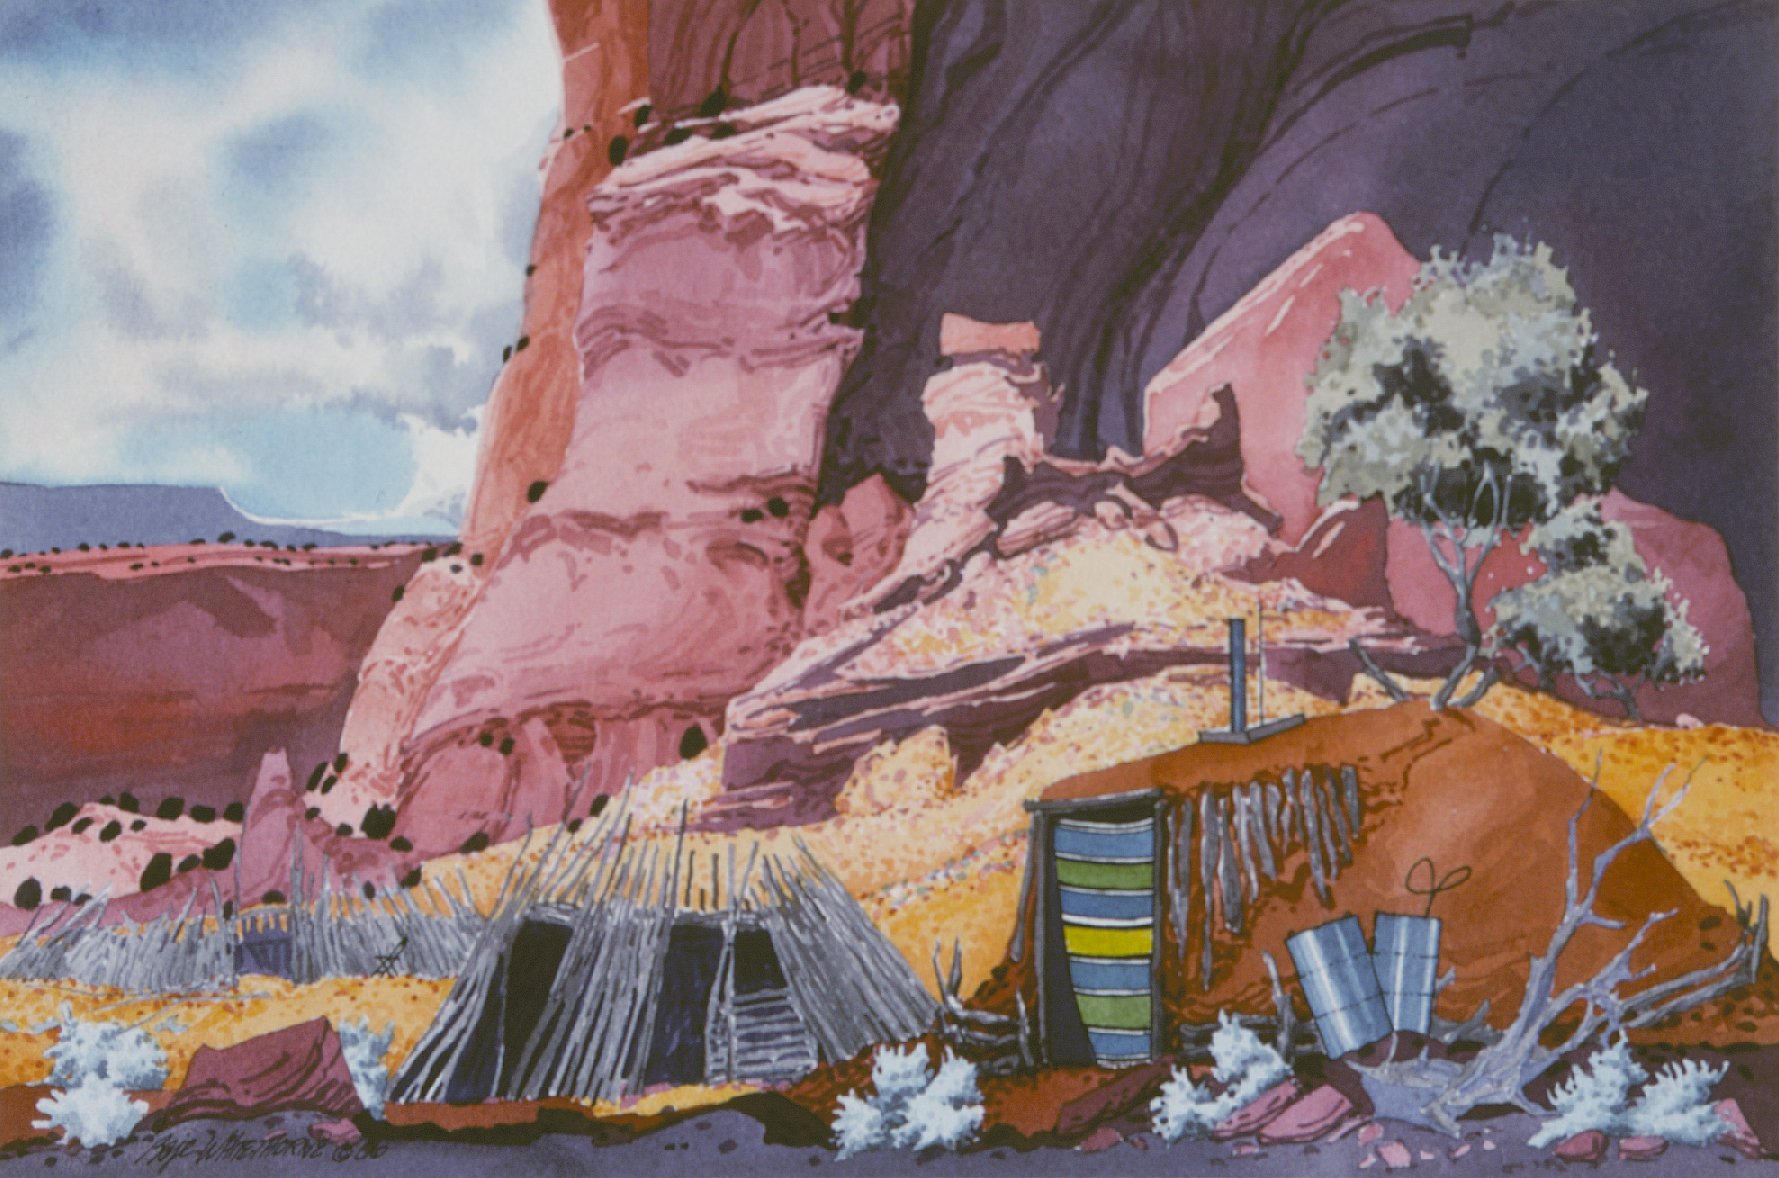 Beneath Majesty -or- At Home with Majesty (1986) -by- Baje Whitethorne, Sr. Navajo Watercolor on Paper  Catalog No.: 2000-186-239